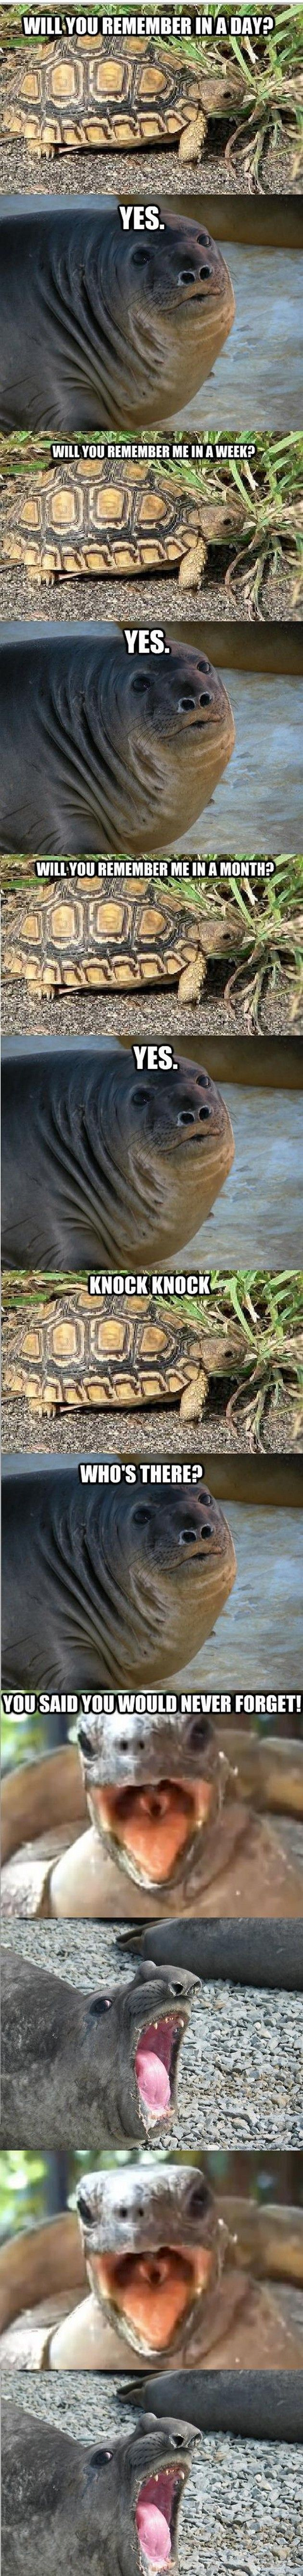 Not sure why I can't stop laughing at this